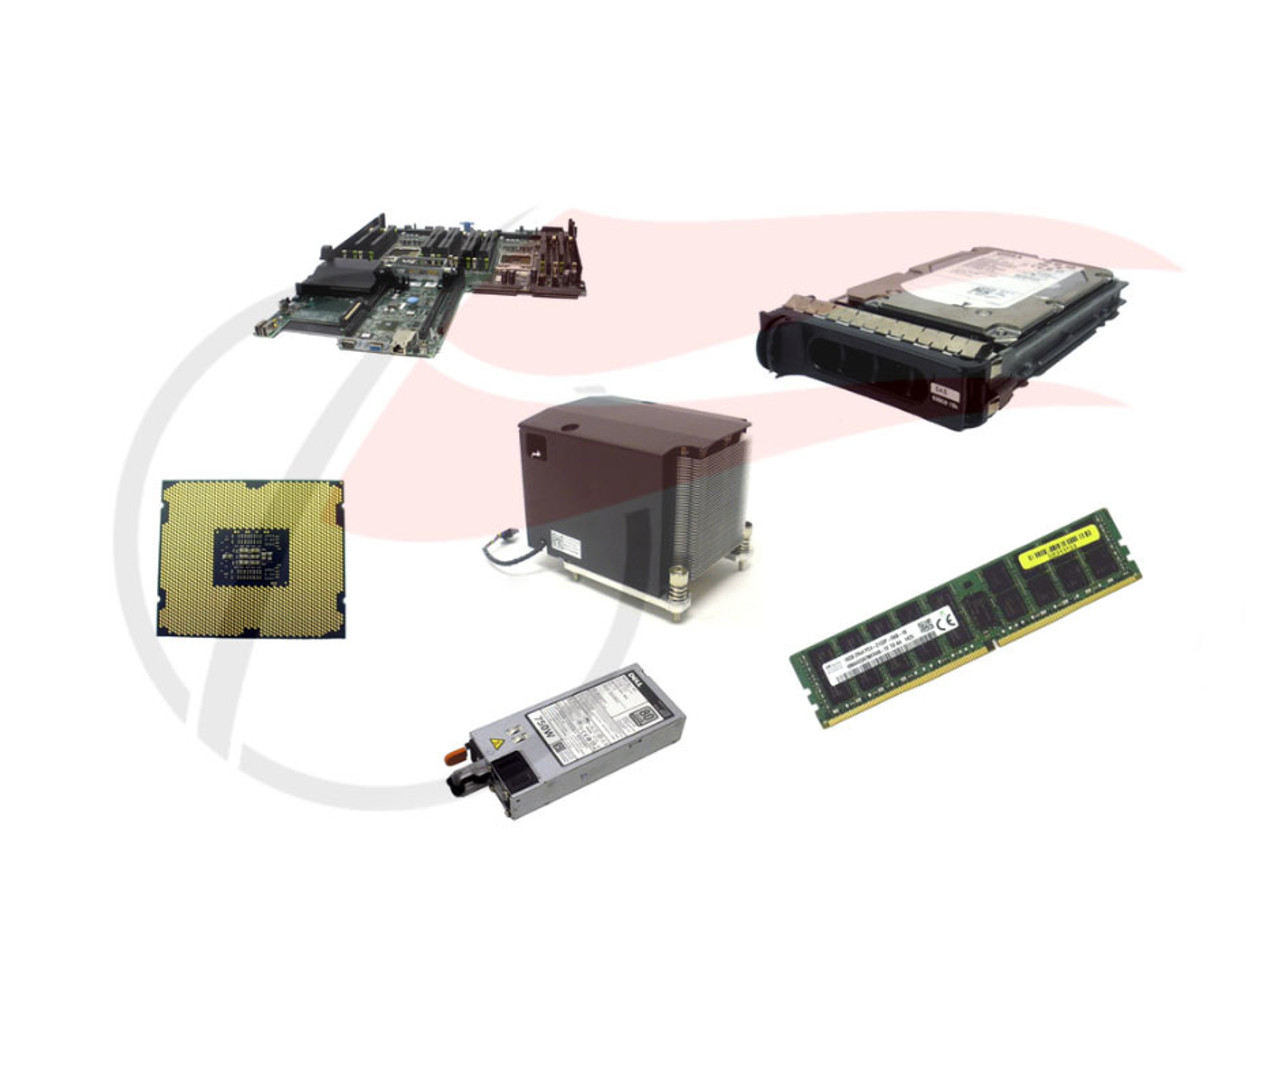 Dell PowerEdge R730 Network Adapters